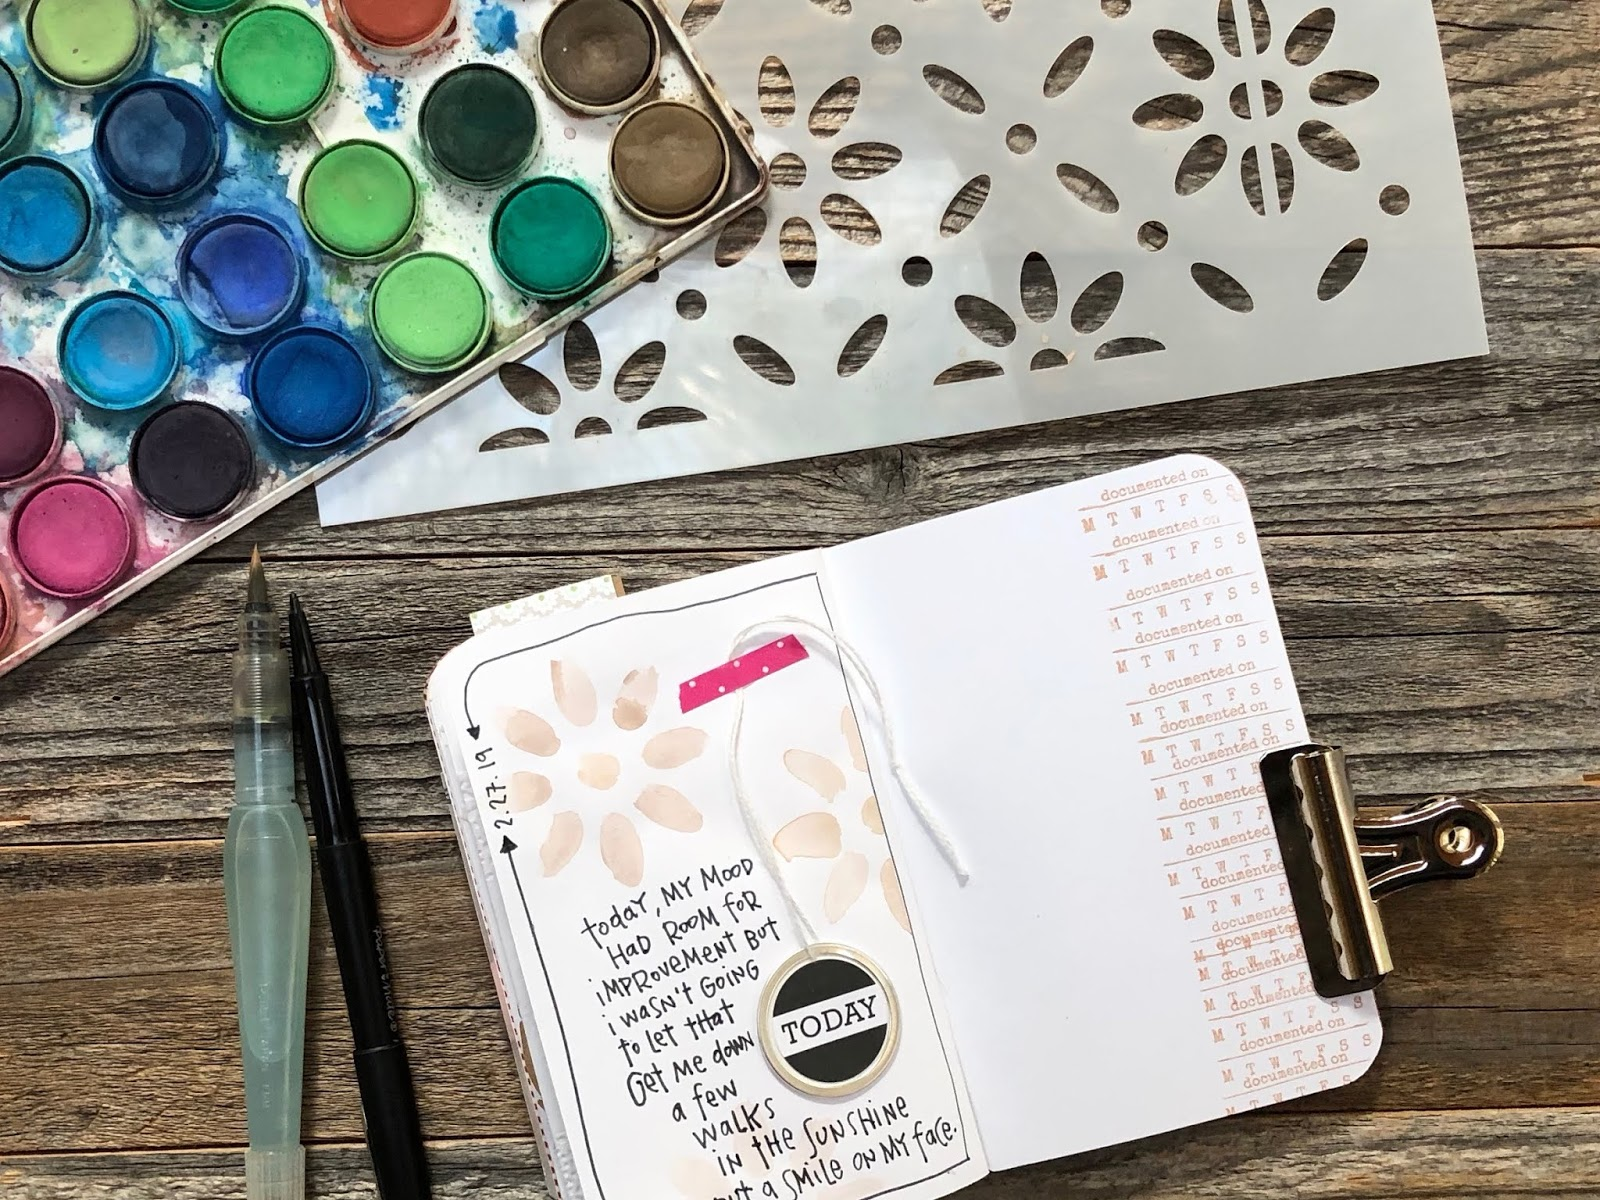 #travelers notebook #gratitude journal #today #printable #watercolor #ilovethursdaythanks #Thankful Thursday #gratitude #gratefulness #thankfulness